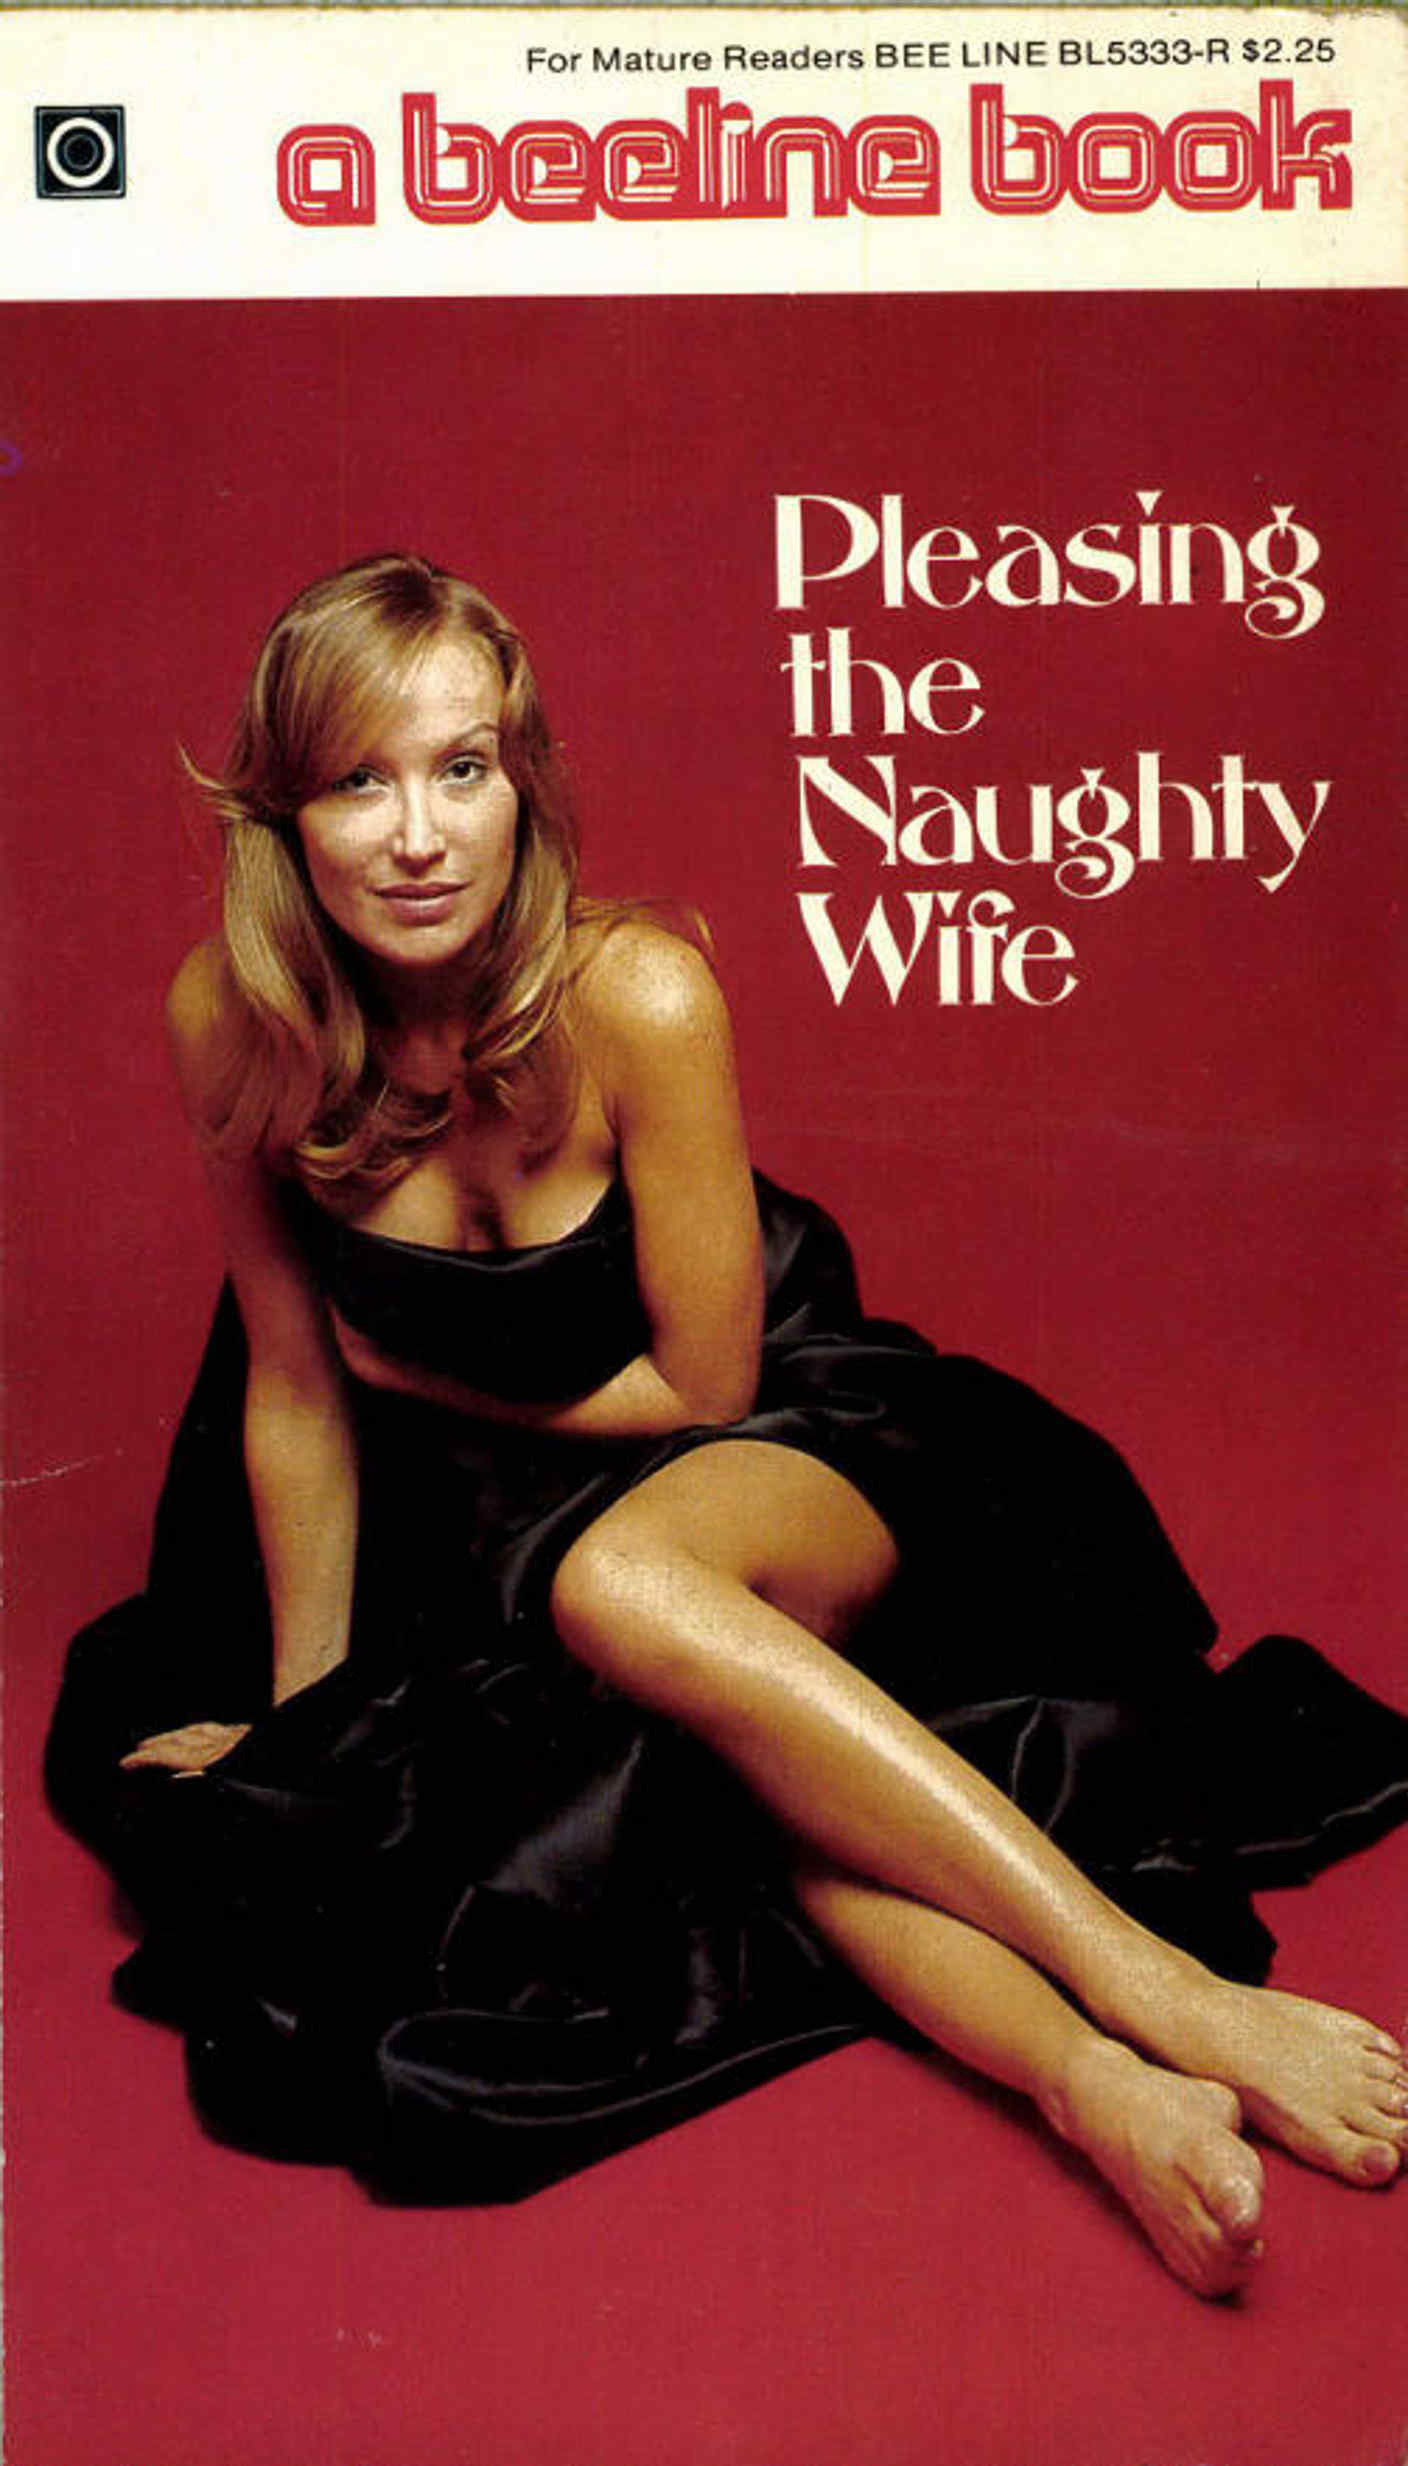 Pleasing the Naughty Wife